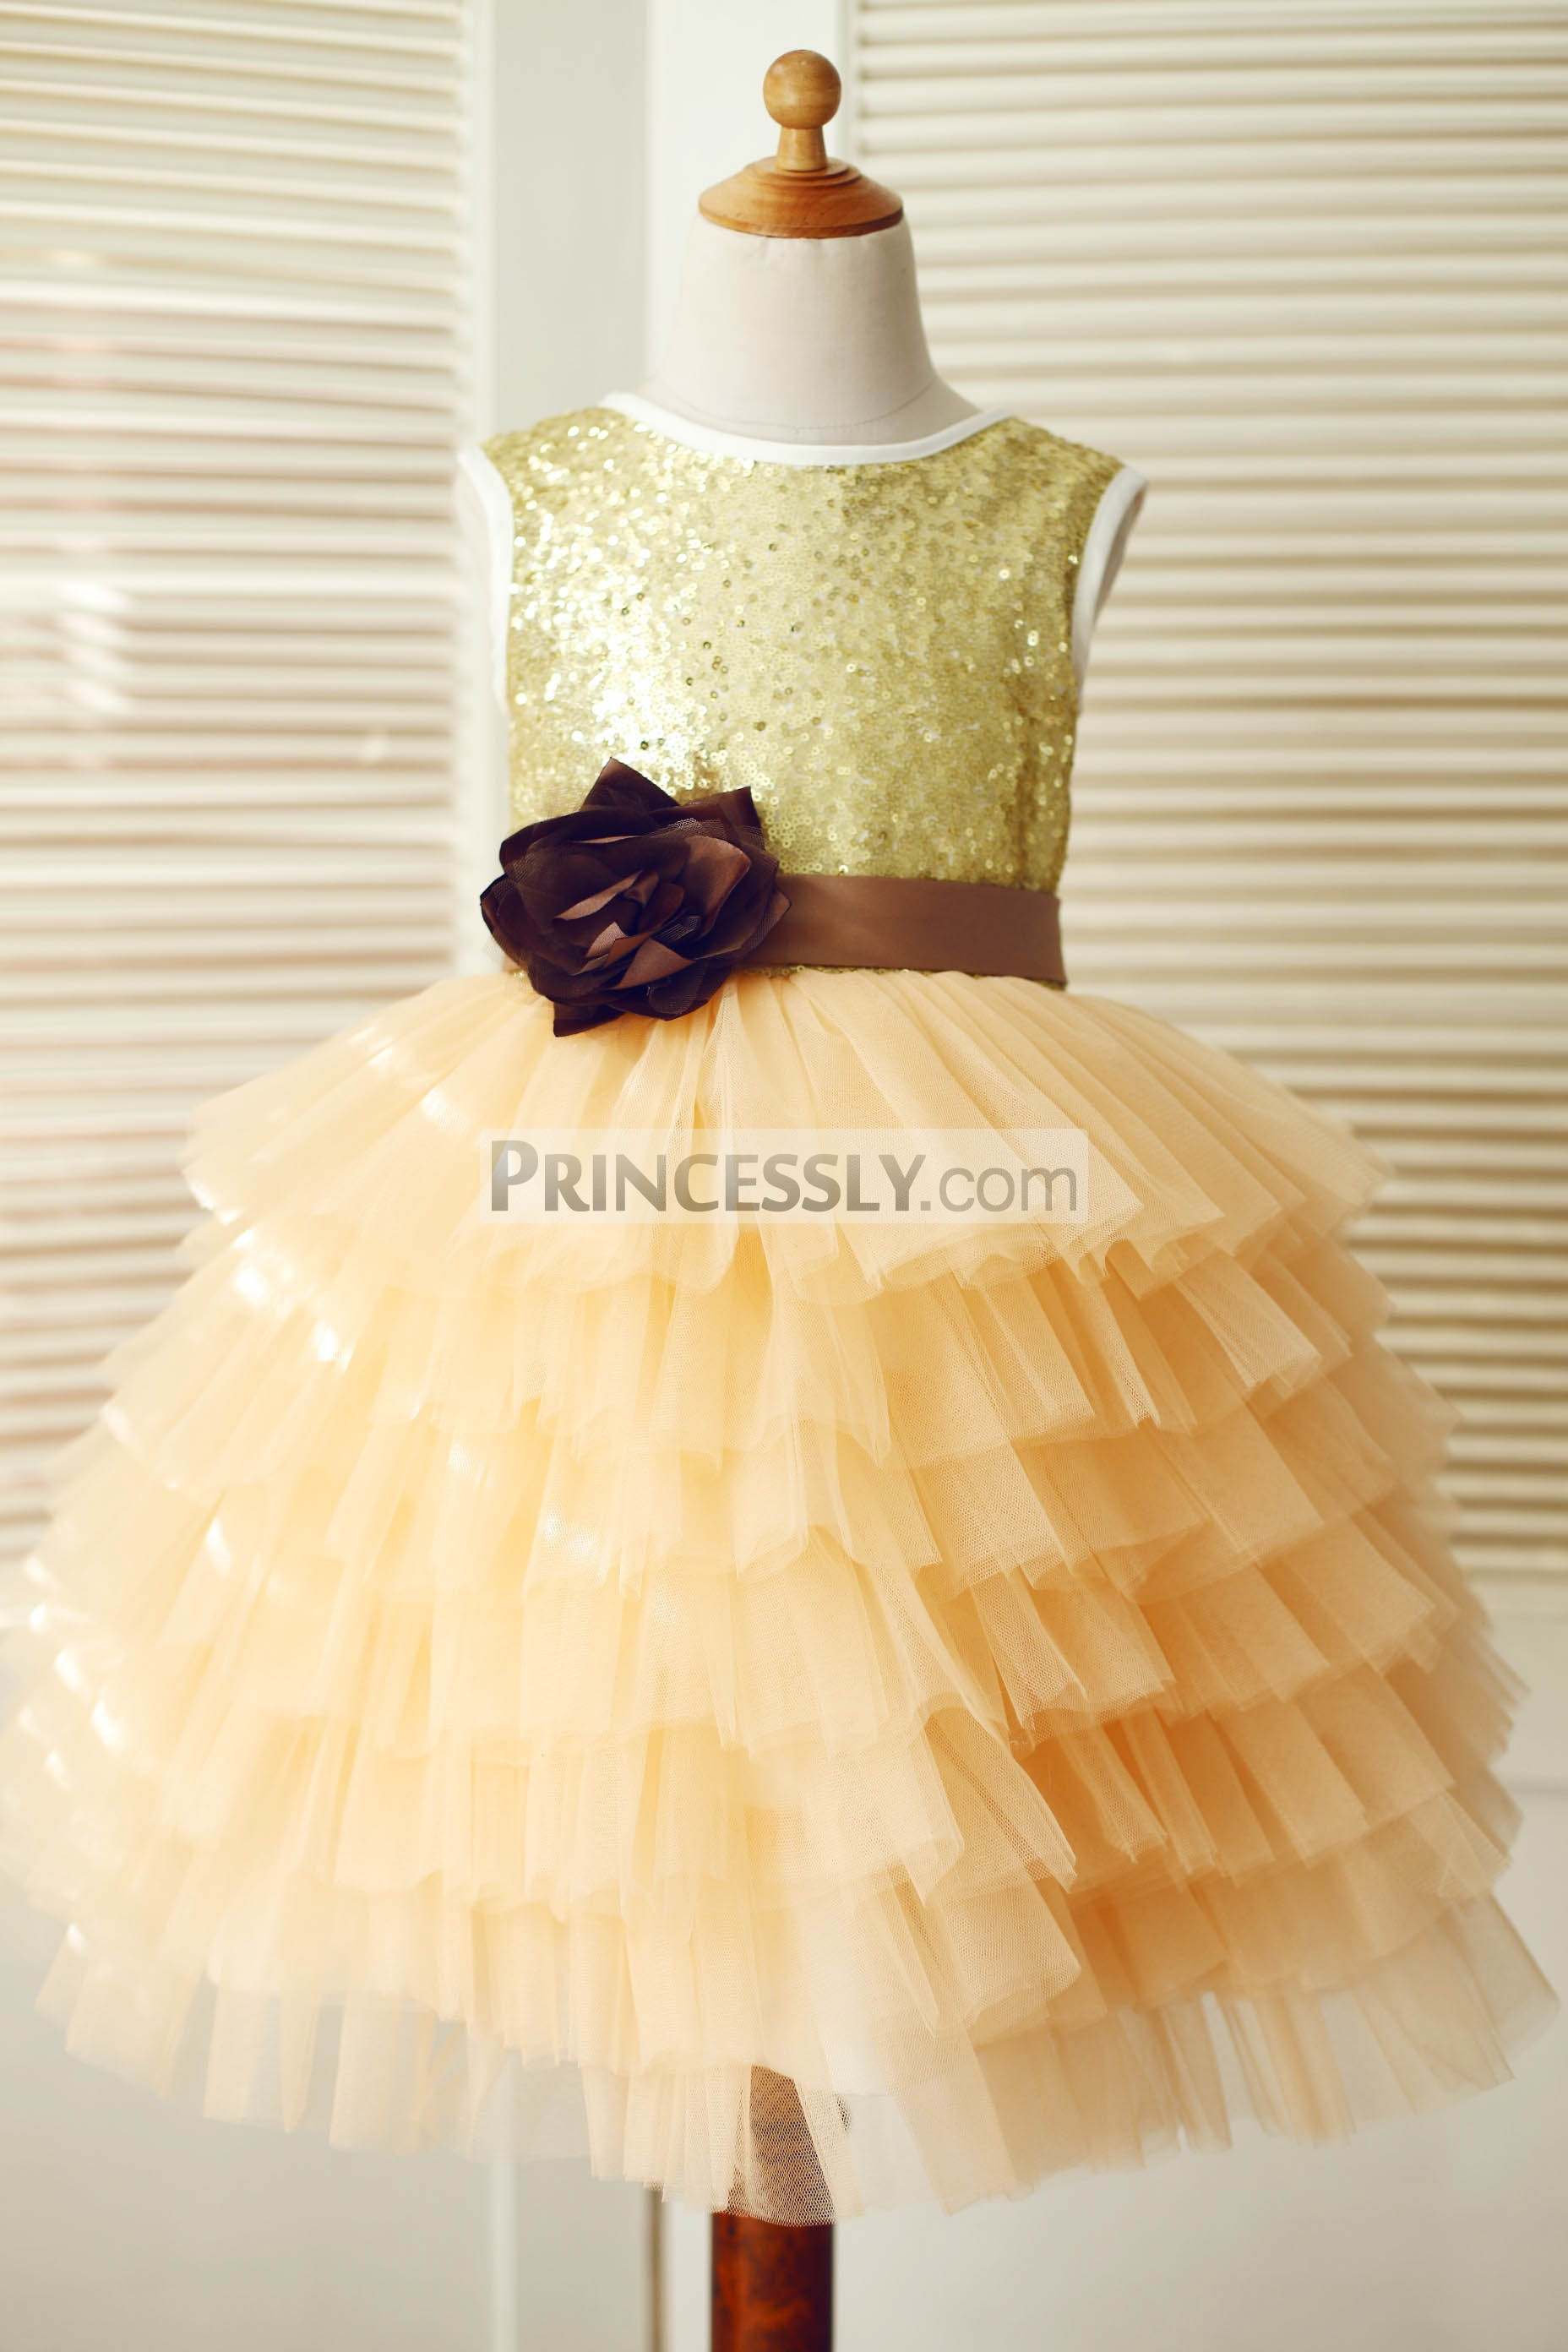 c939cf855a Gold Sequin Champagne Cupcake Tulle Flower Girl Dress with Satin ...